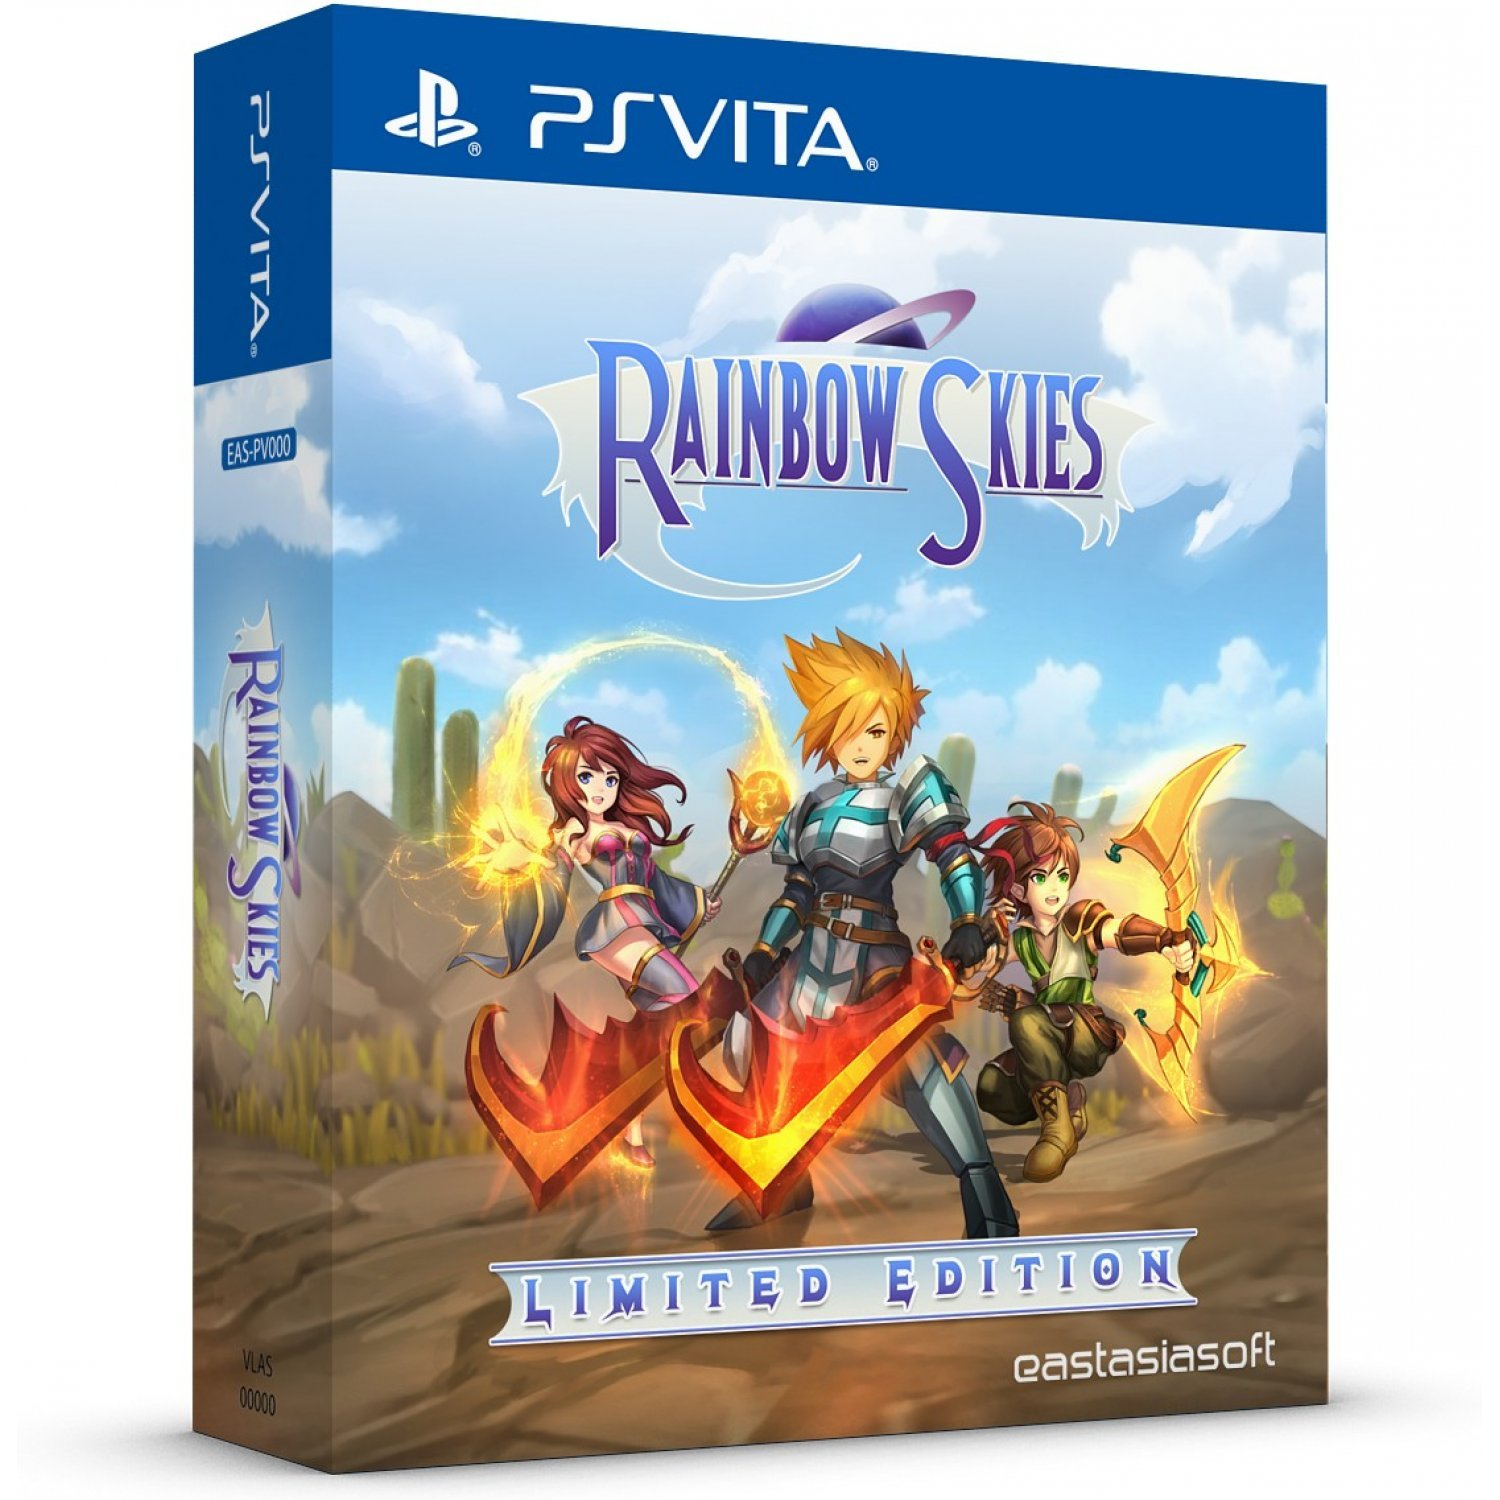 Rainbow Skies Limited Edition - Playstation Vita